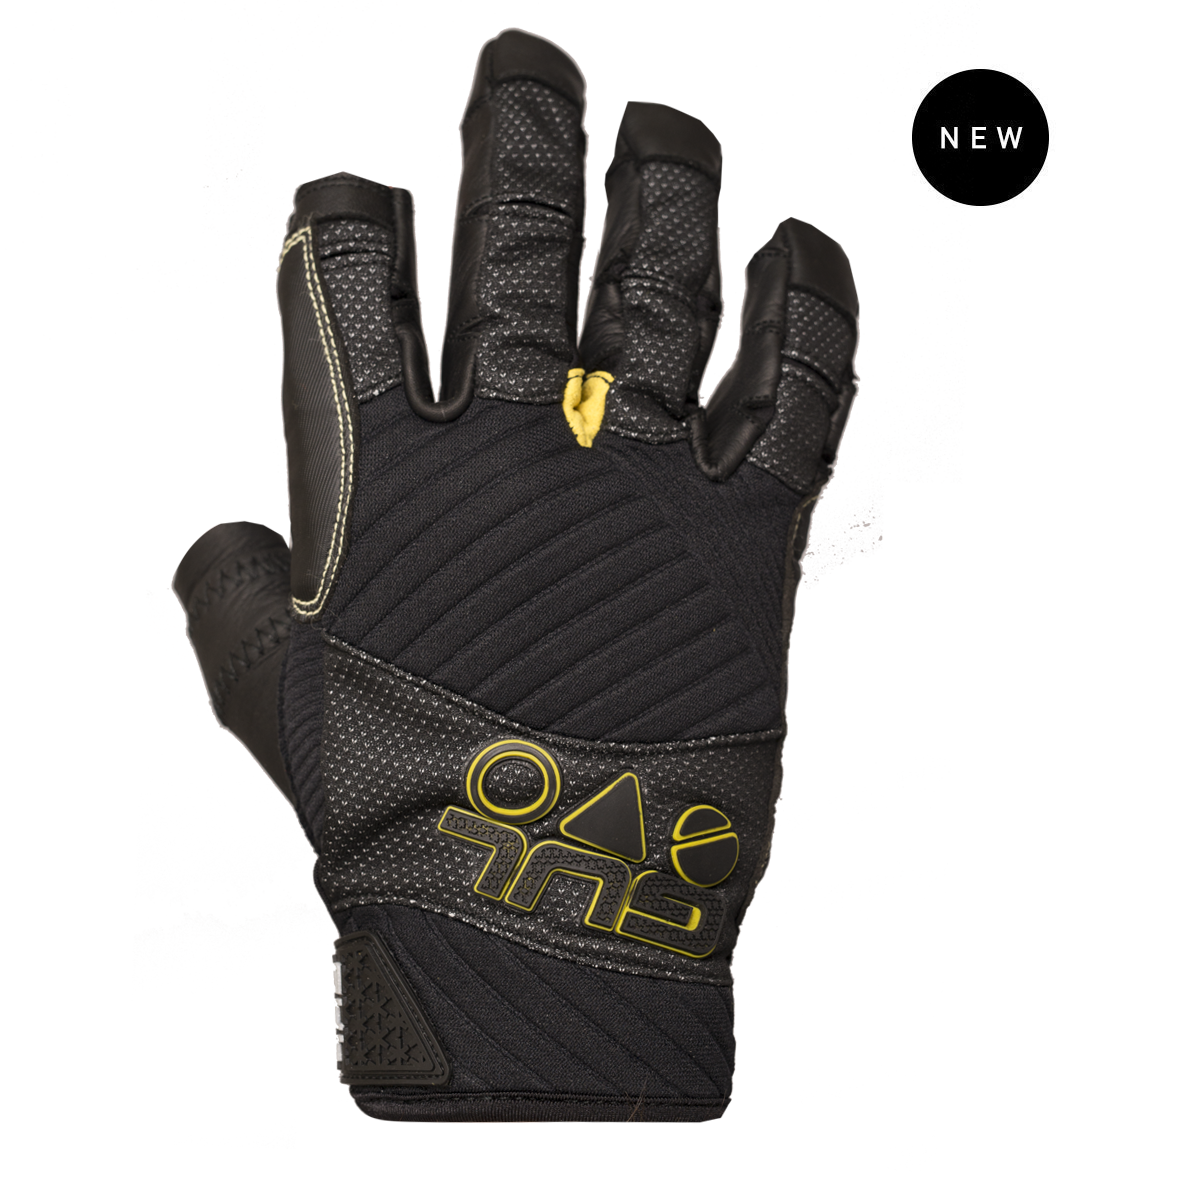 Evo Pro Three Finger Glove   Gl1300-B4